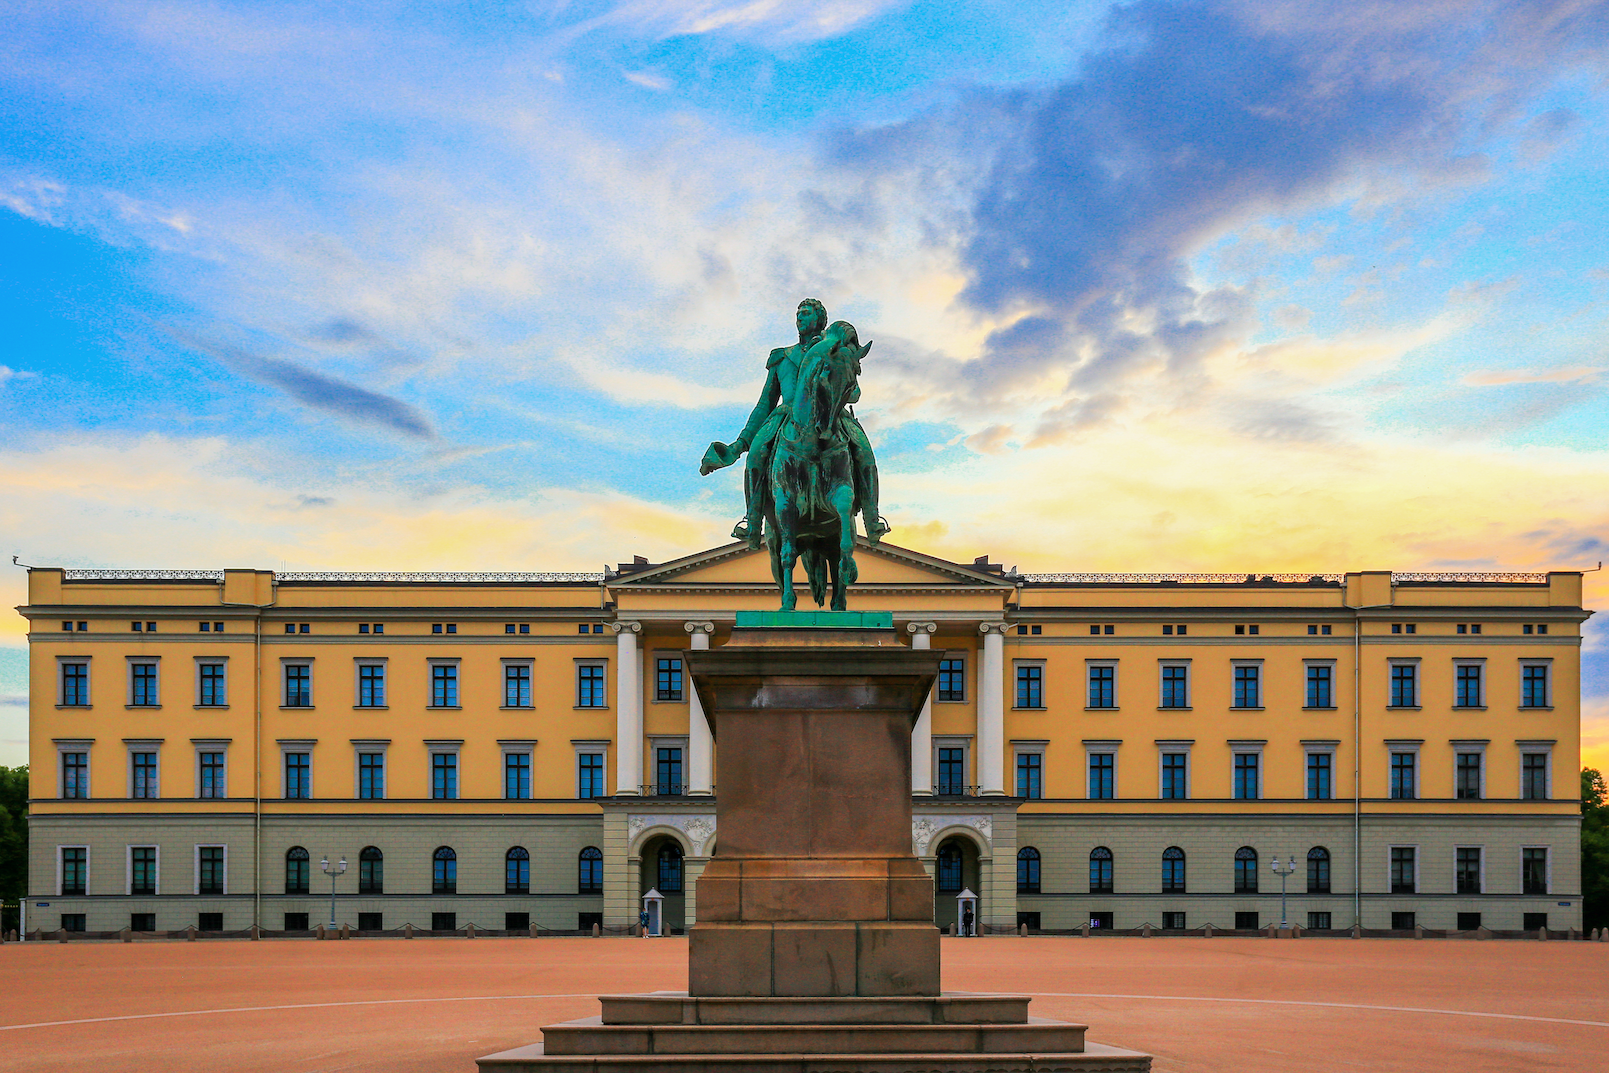 View of the Oslo Royal Palace at sunset.